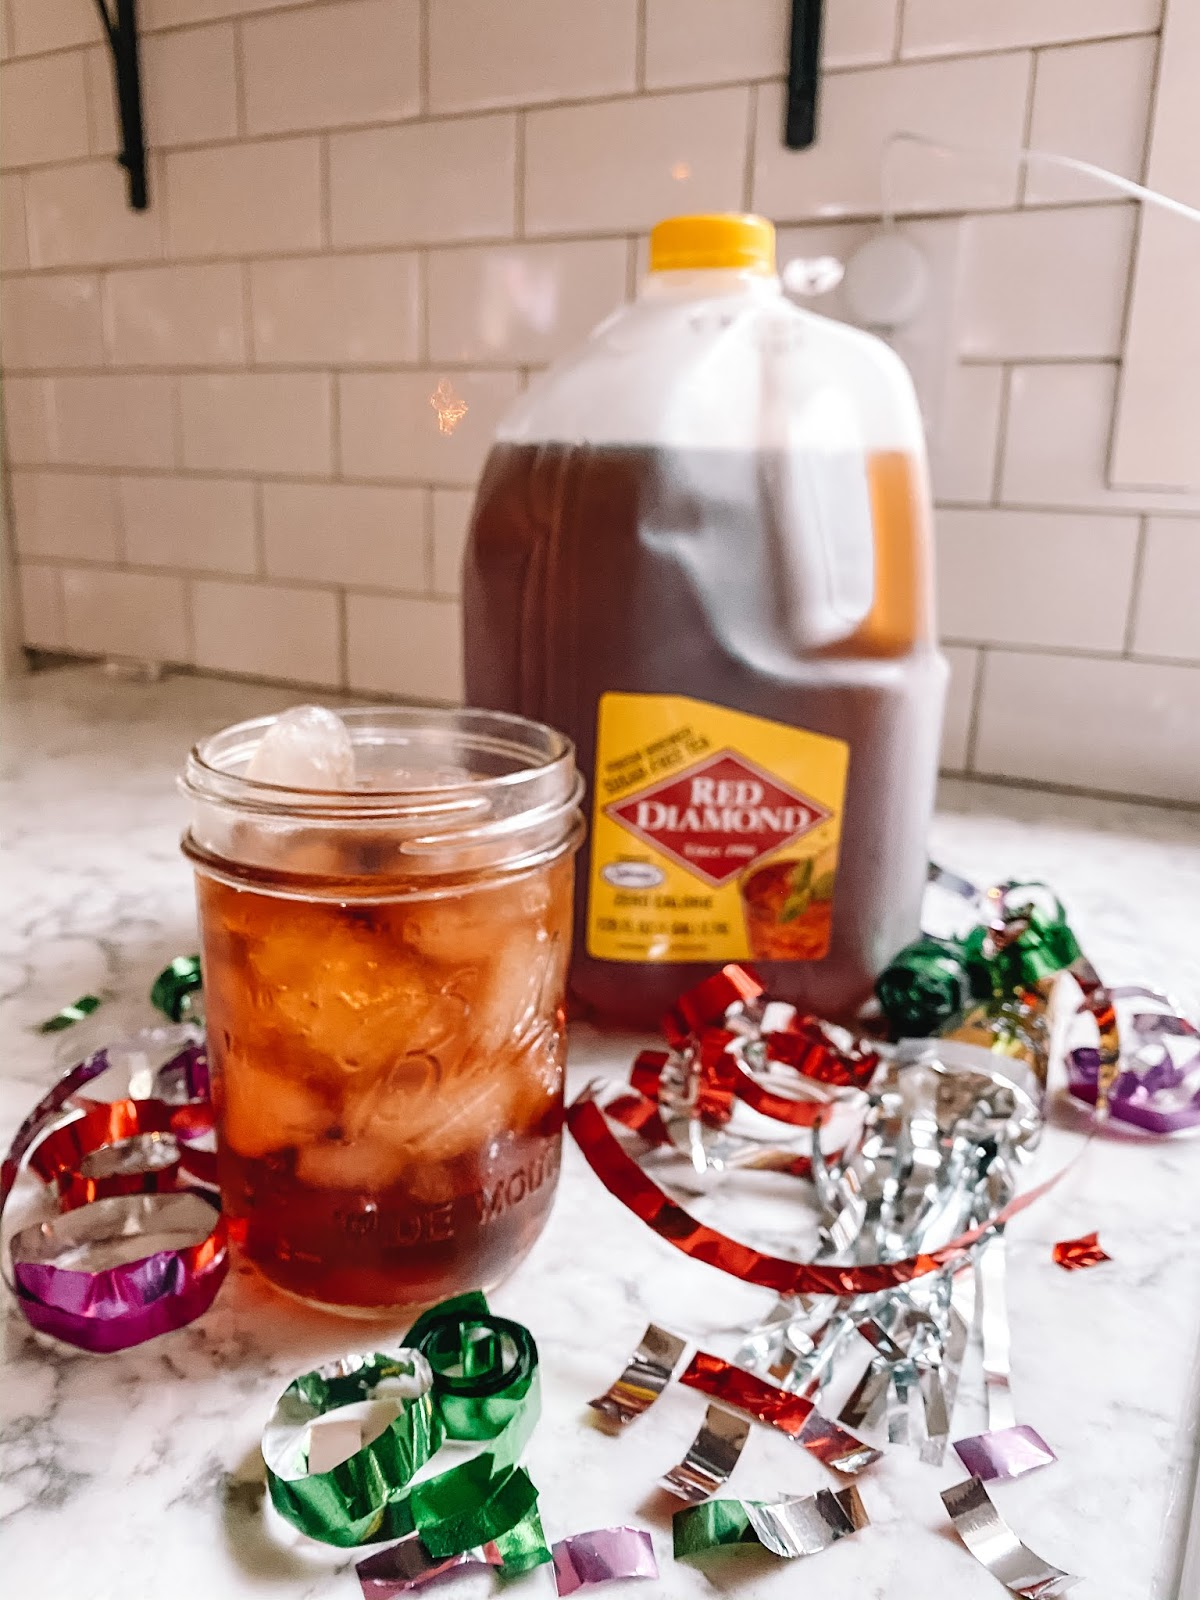 Red Diamond tea is served for NYE get togethers at Oklahoma City blogger Amanda Martin's house